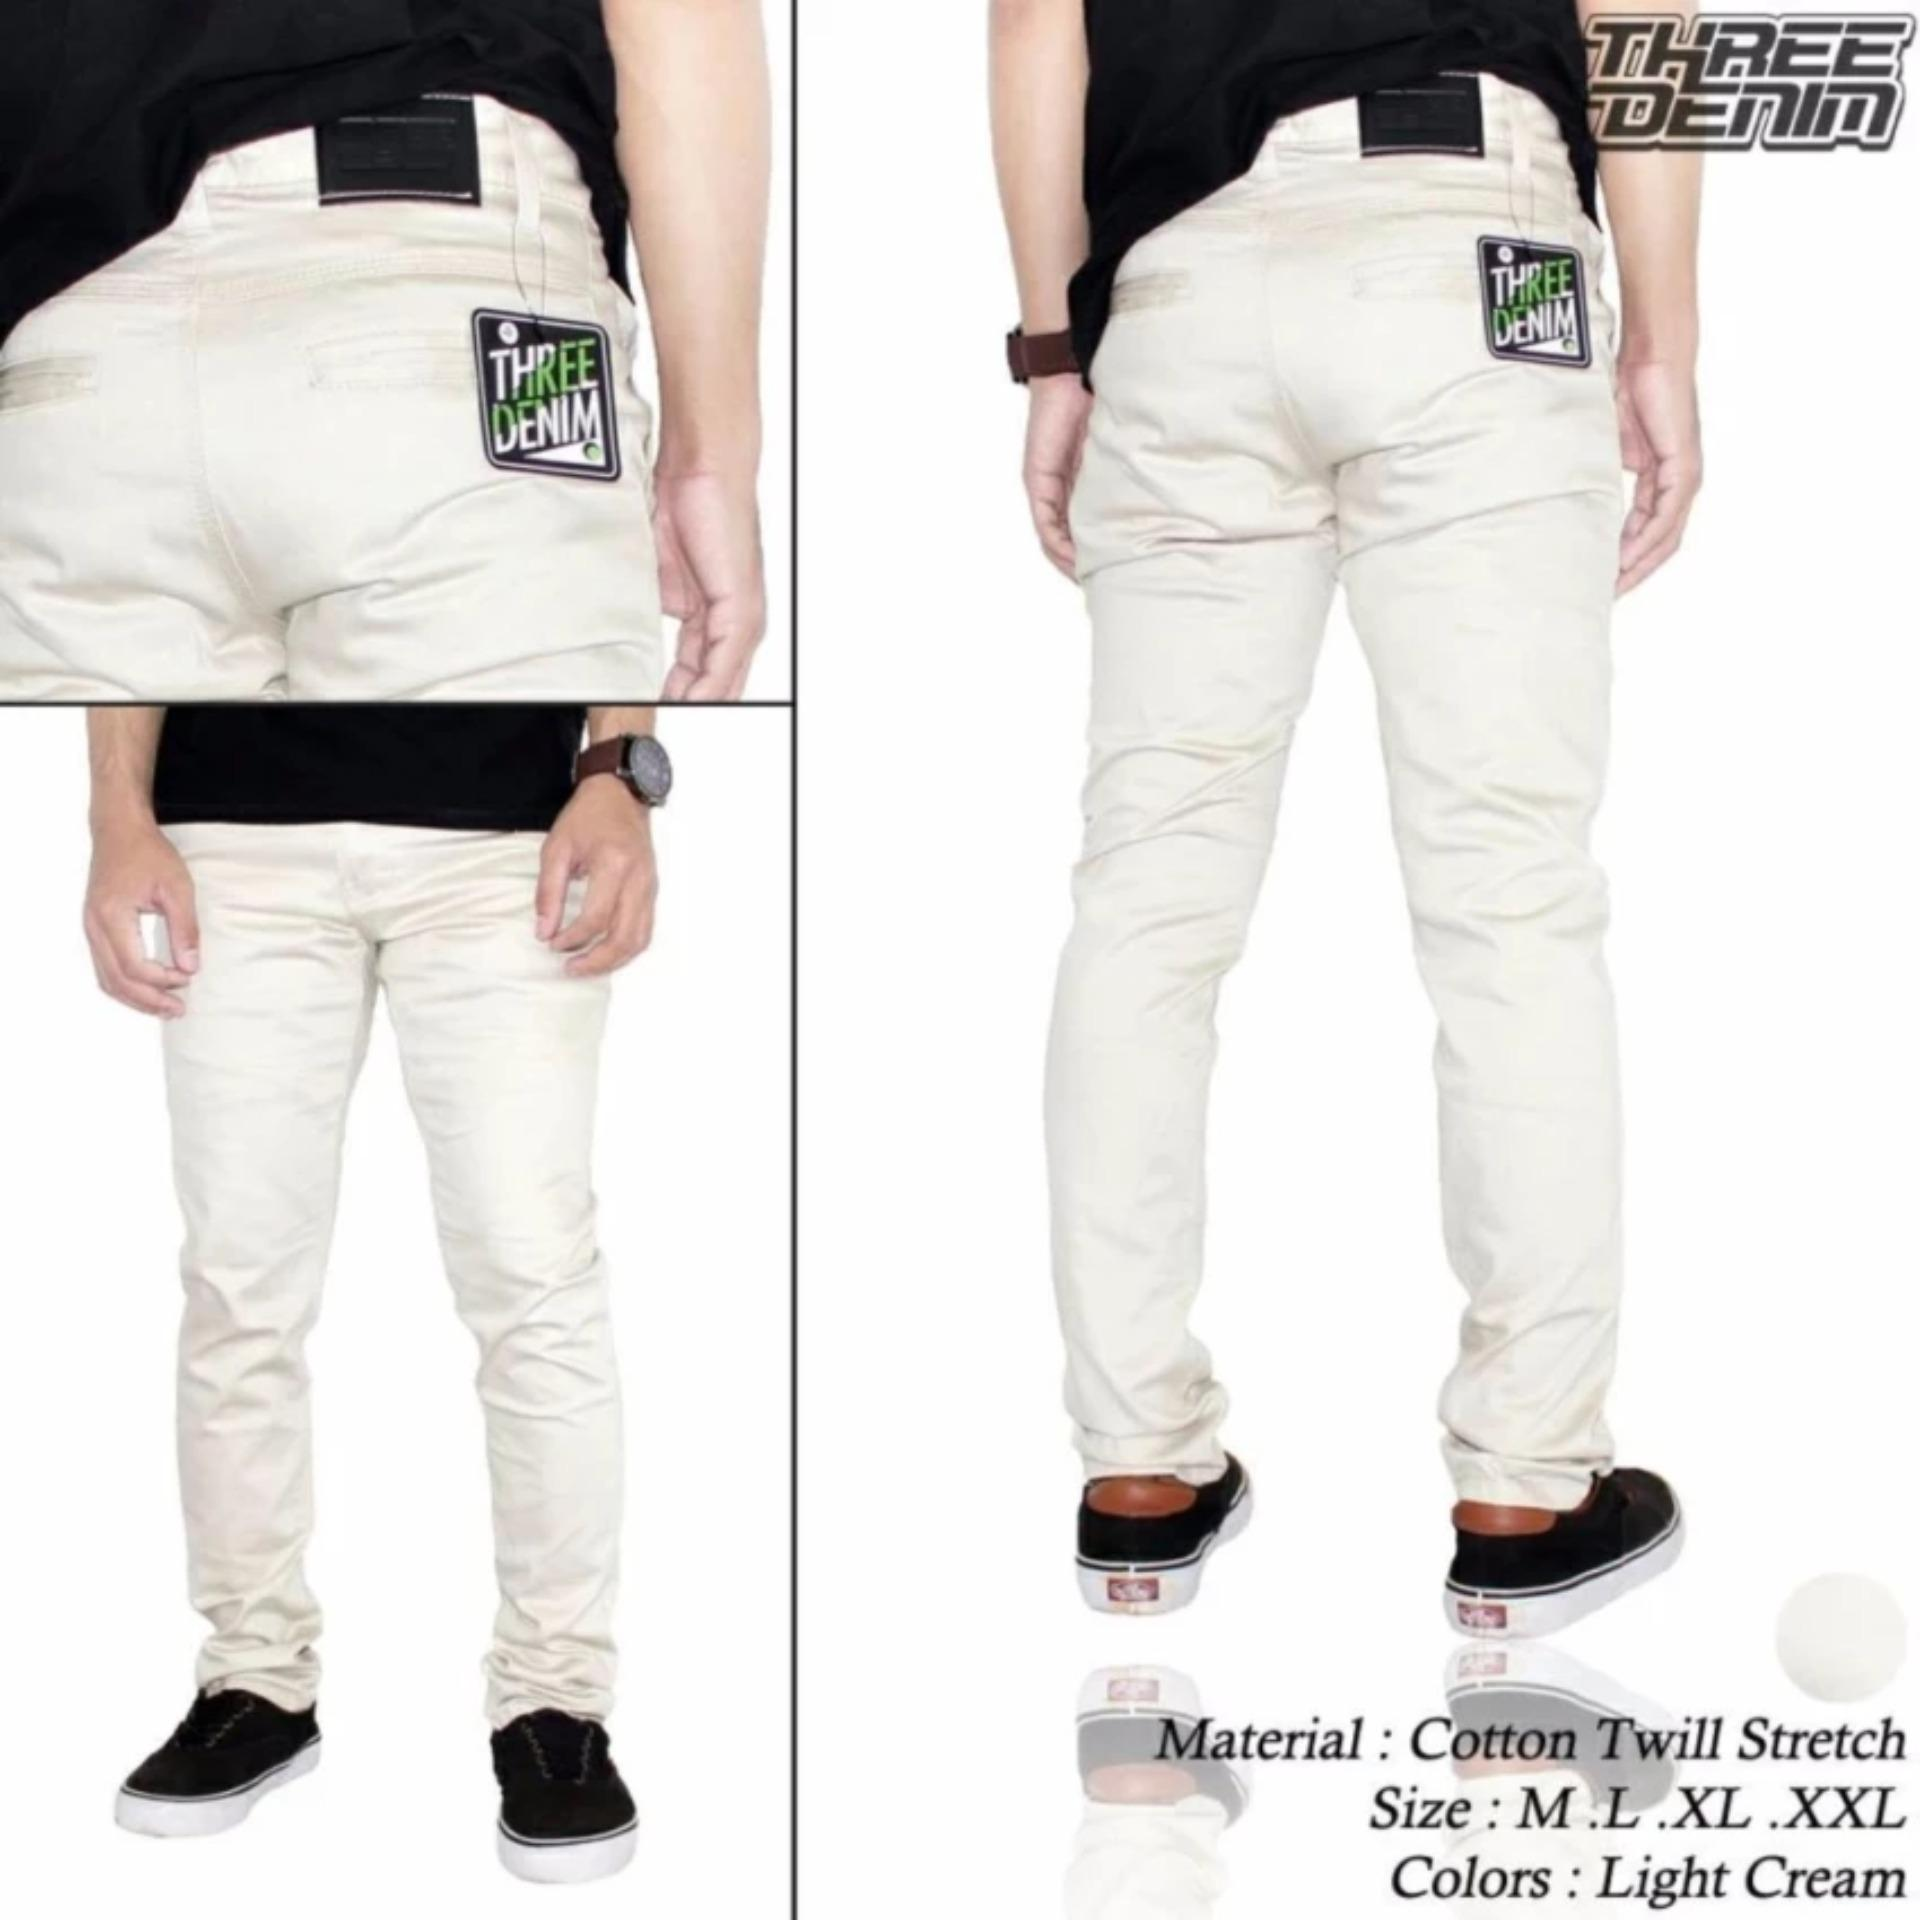 Promo Celana Chino Panjang Cream Ds